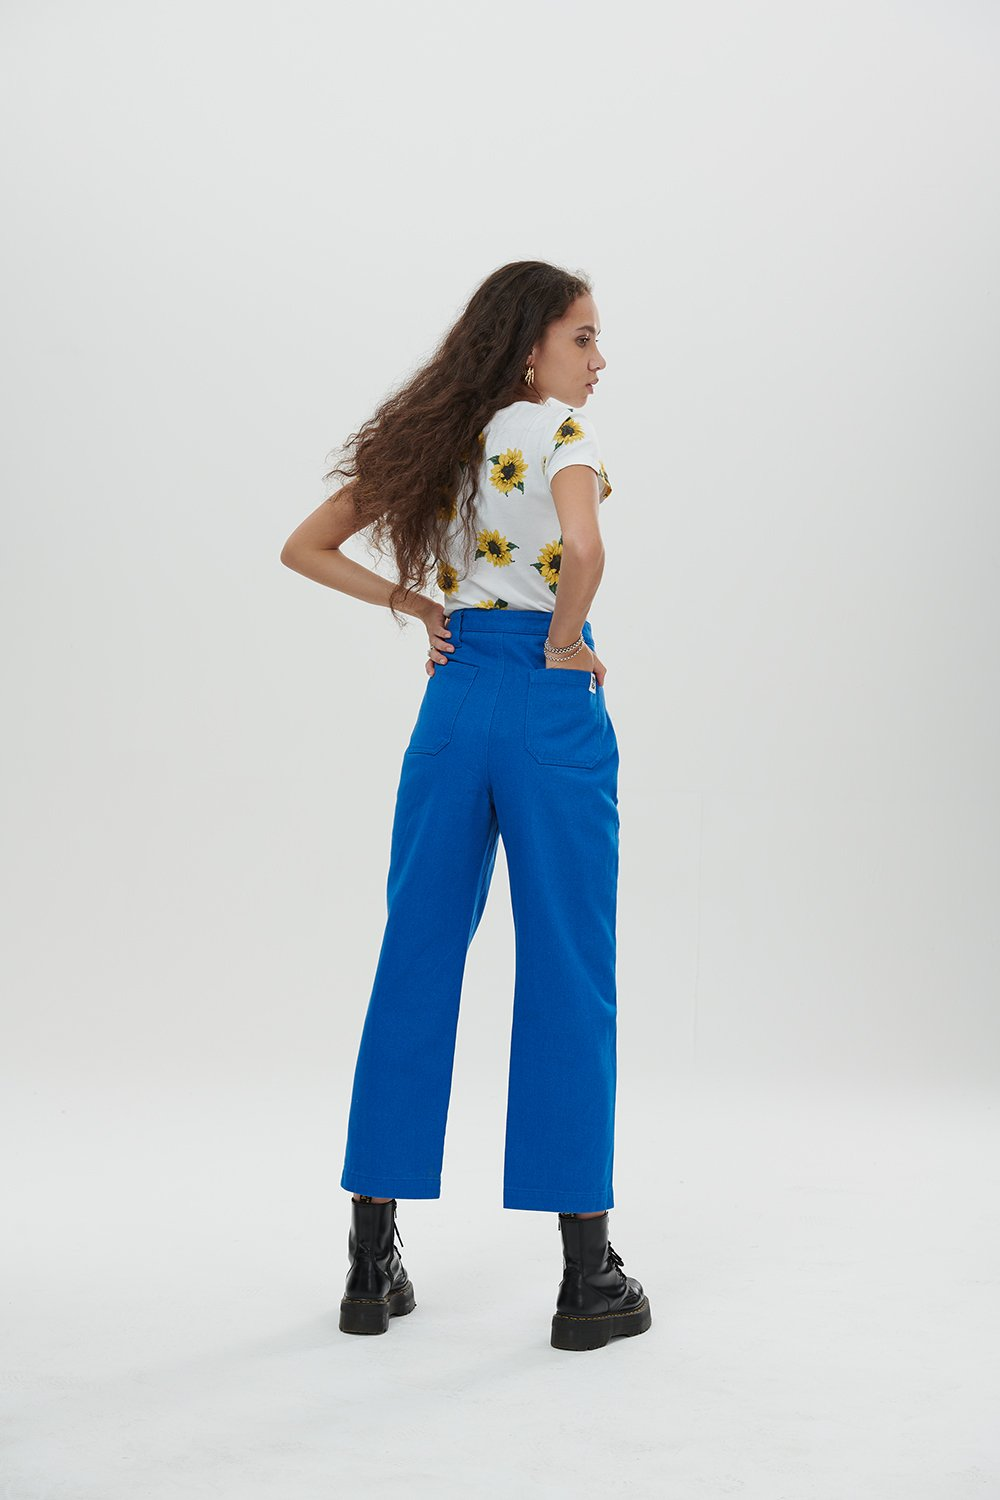 Lucy & Yak trousers 'Logan' Mid Rise Cargo Pants In Cobalt Blue